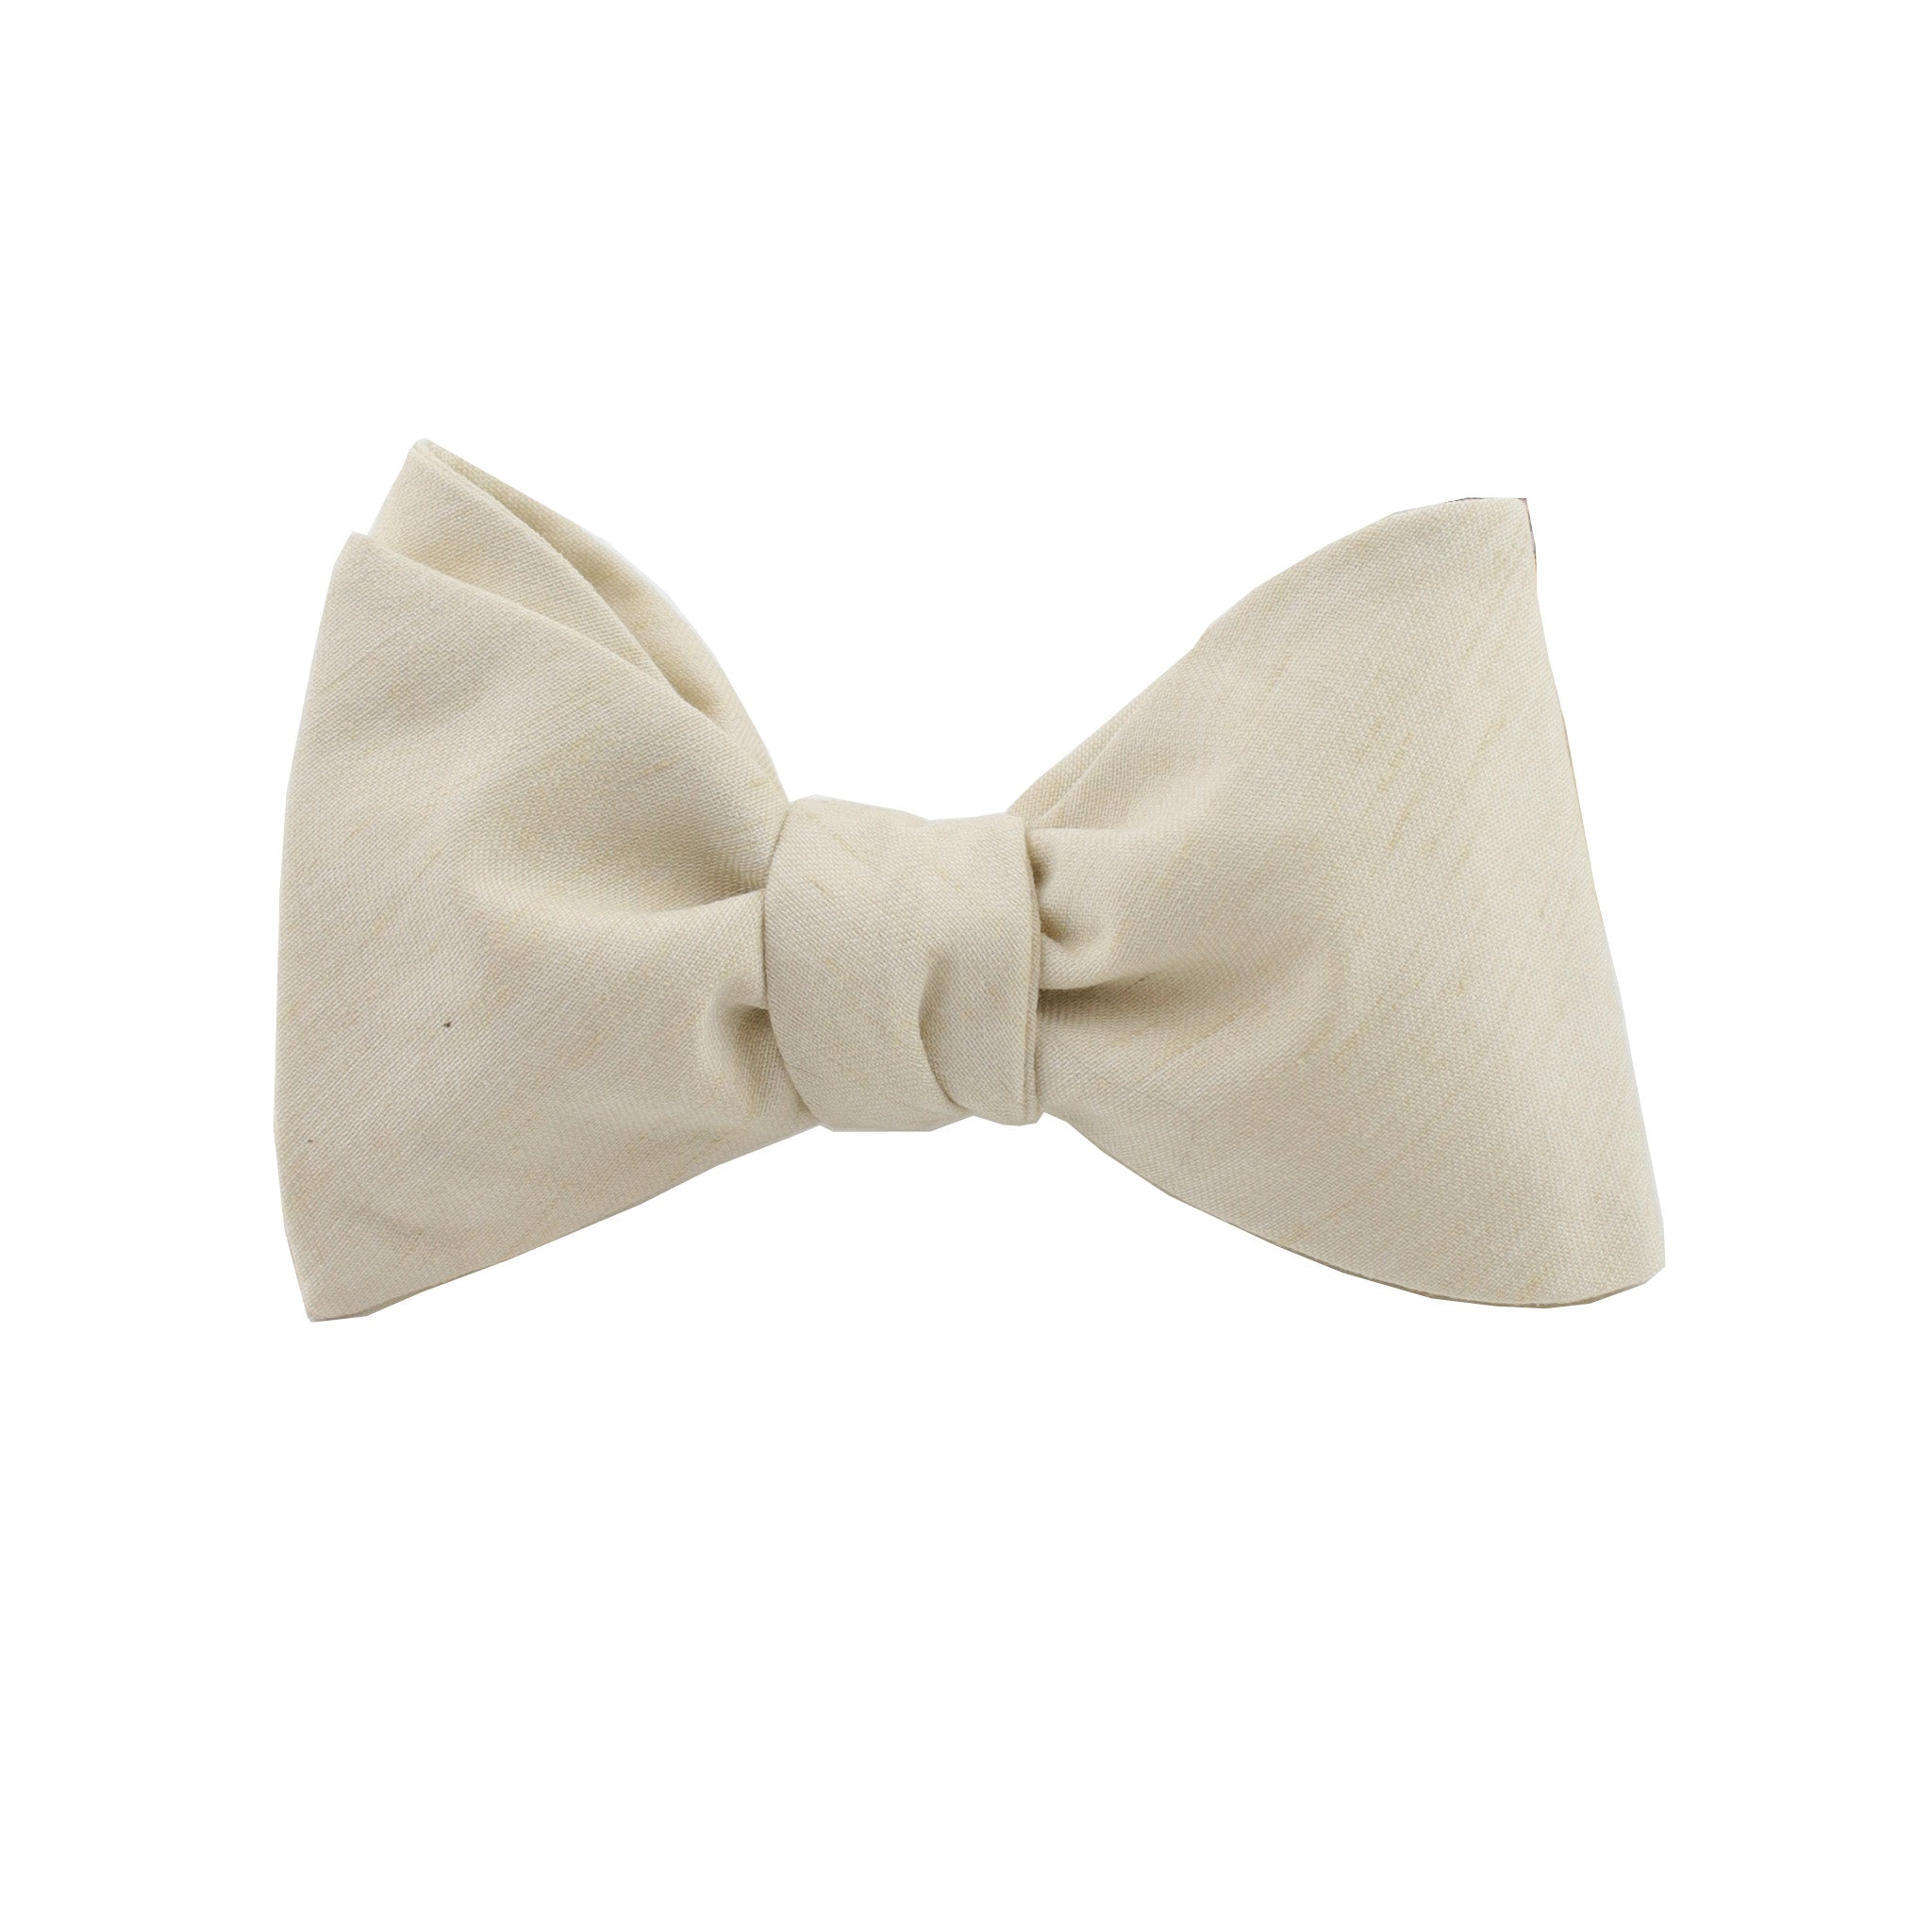 Lightweight Ivory Self Tie Bow Tie from DIBI